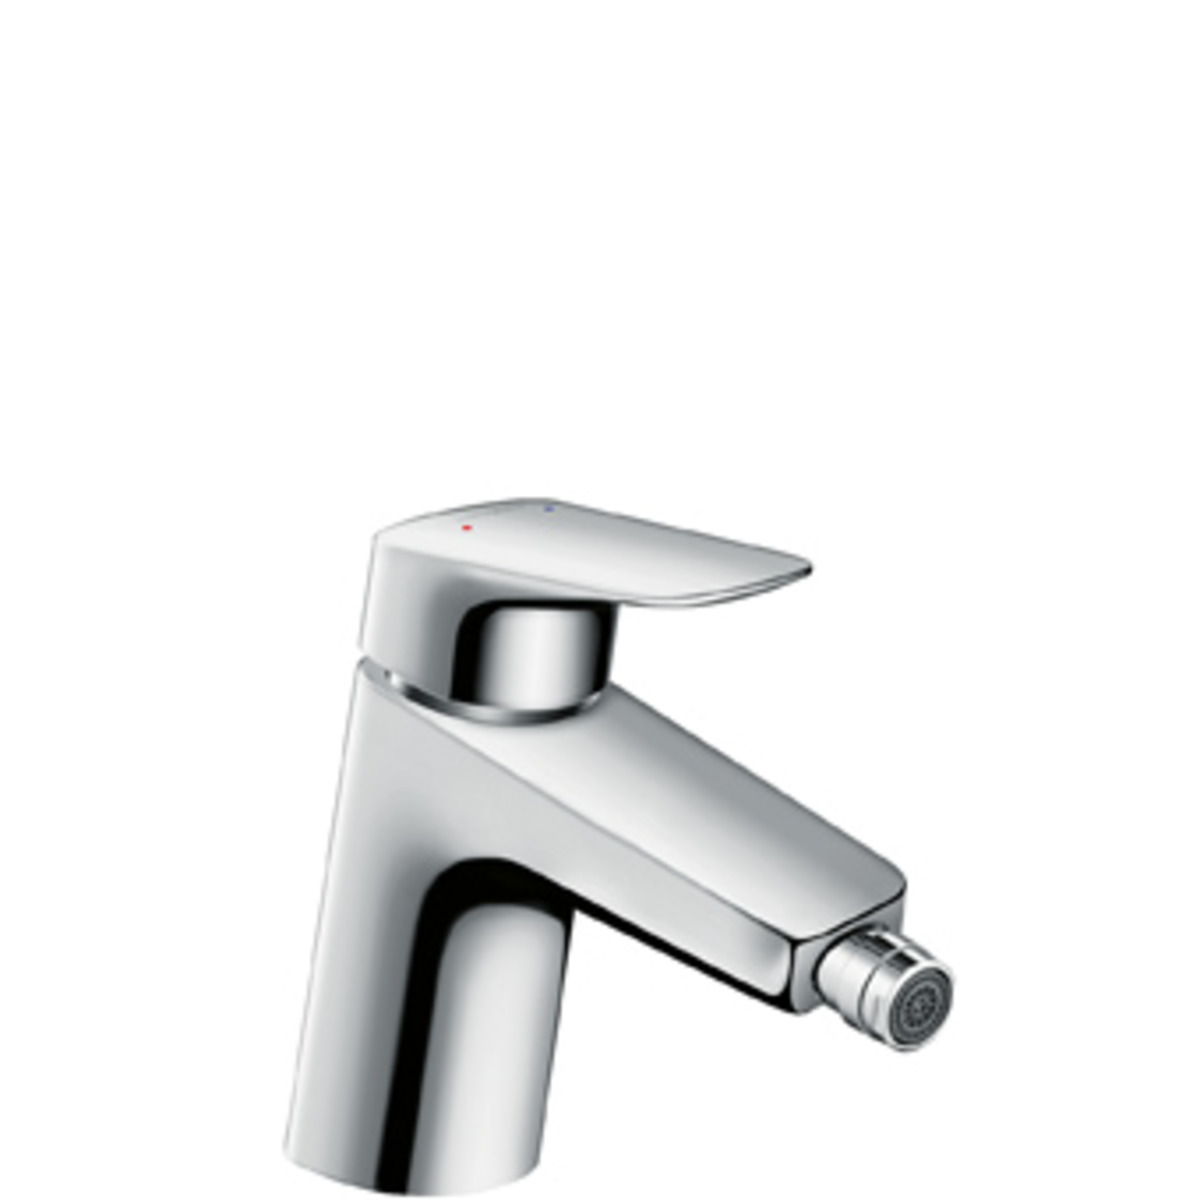 hansgrohe logis robinet de bidet avec bonde chrome. Black Bedroom Furniture Sets. Home Design Ideas